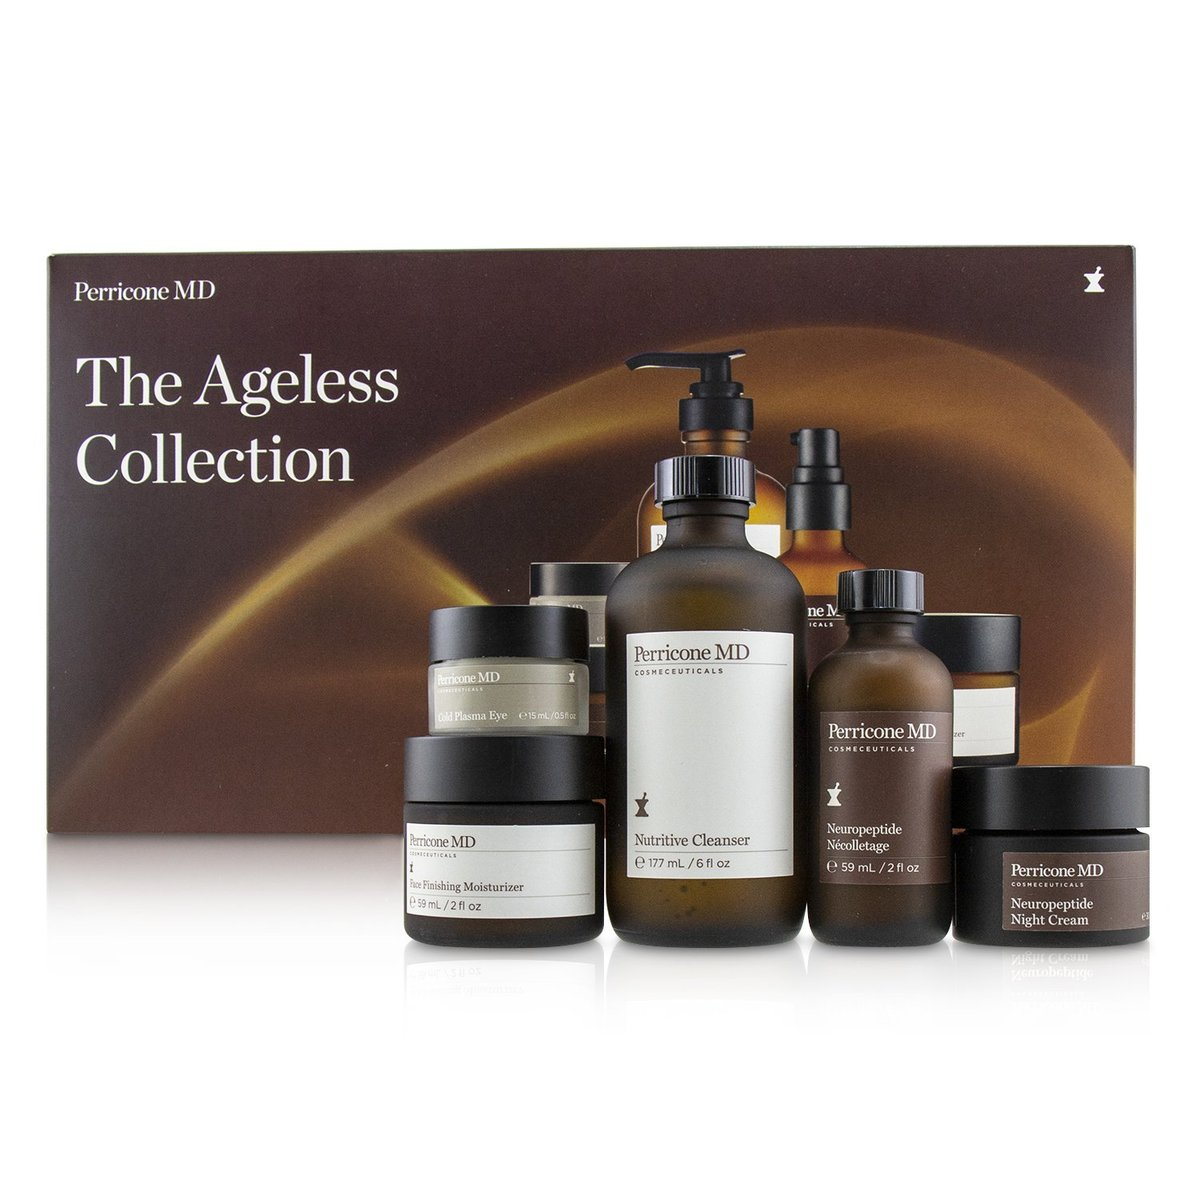 The Ageless Collection: Nutritive Cleanser+Face Finish Moisturizer+Neuropeptide Night Cream+Cold Pla